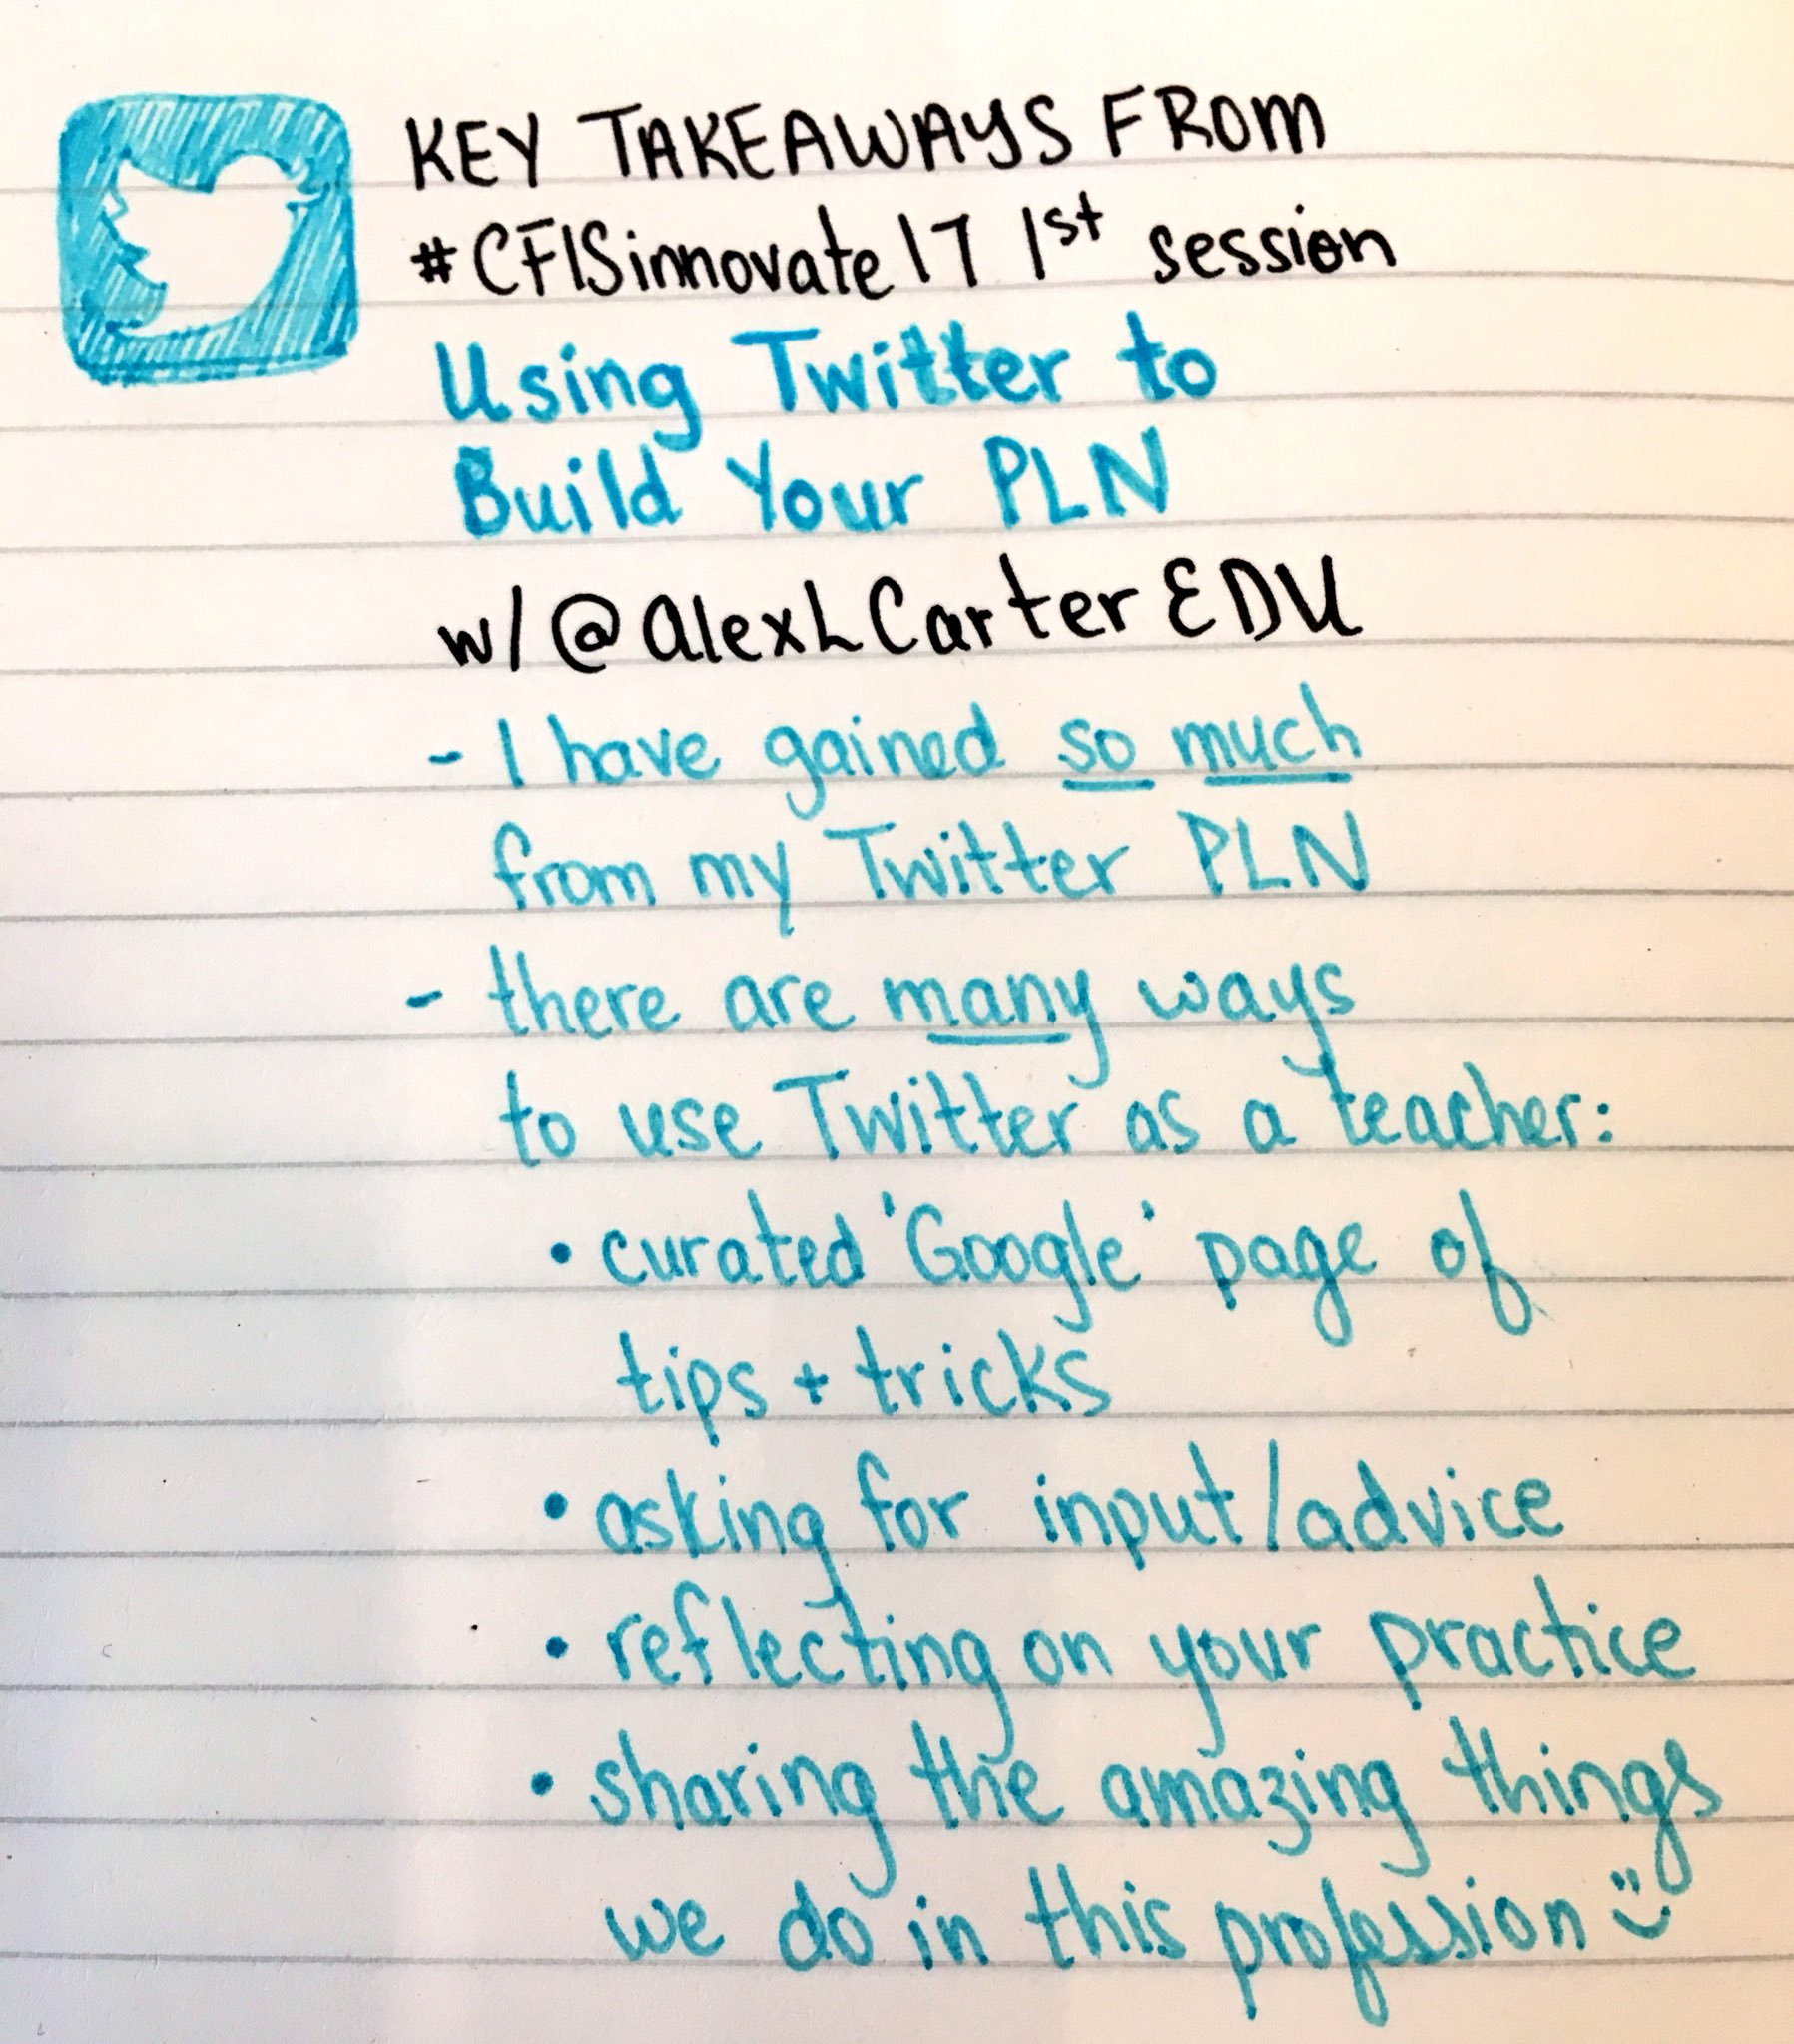 Recap 1 of #CFISinnovate17. Thank you @AlexLCarterEDU for reminding me of how grateful I am to my #PLN for the support and inspiration https://t.co/sbCvDrOWv2